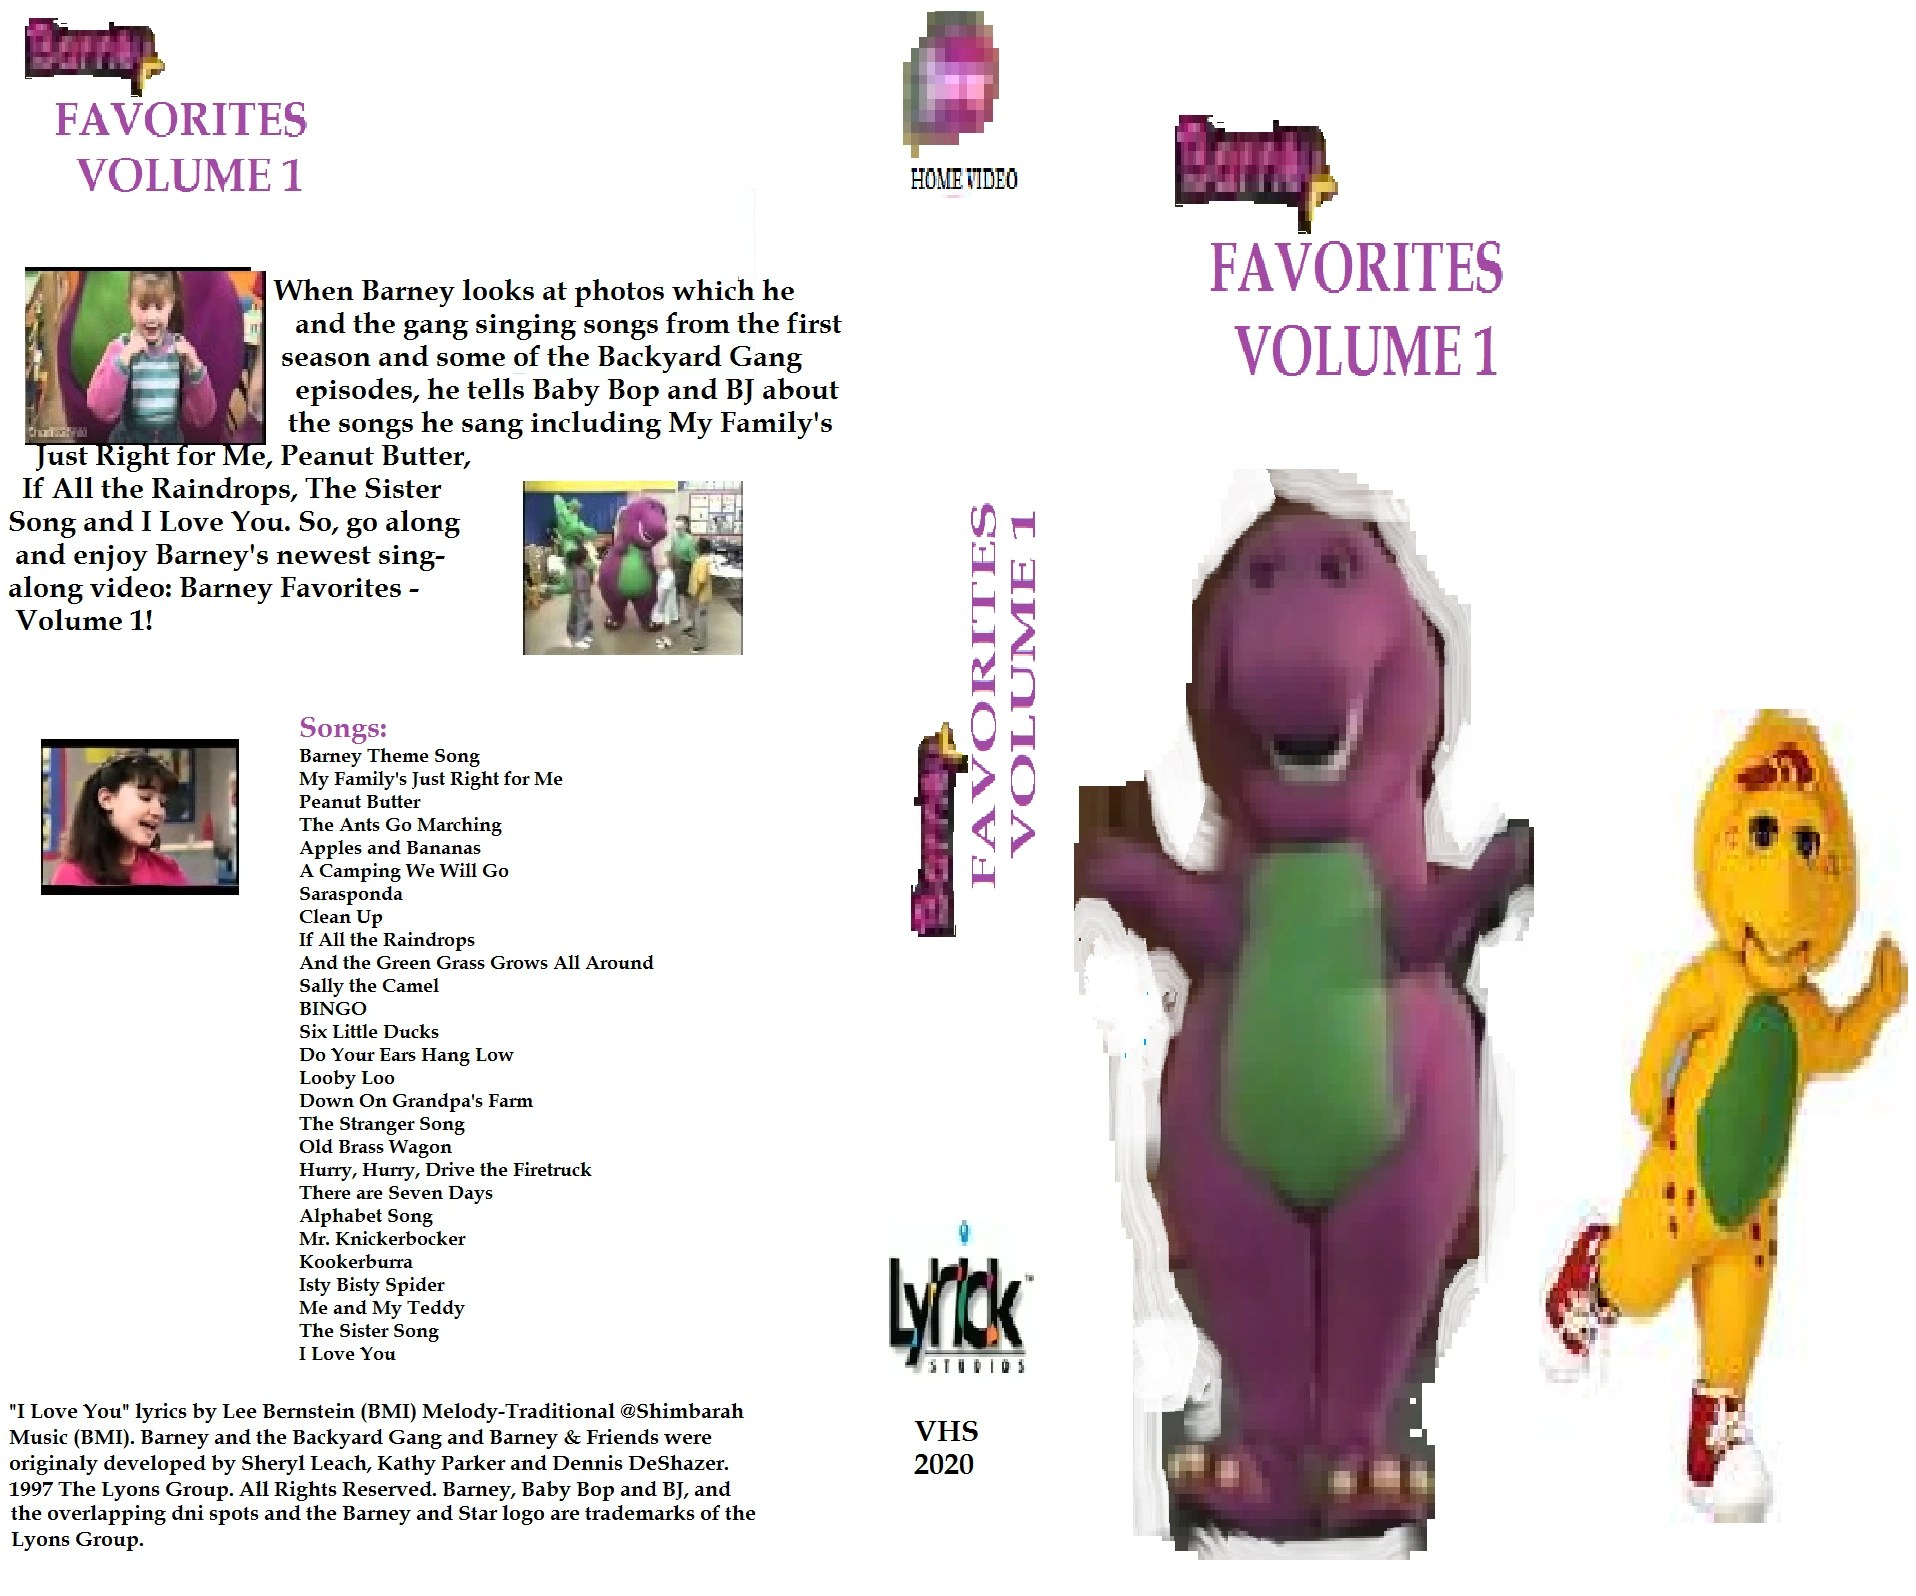 Barney Favorites Volume 1 Scratchpad FANDOM Powered By